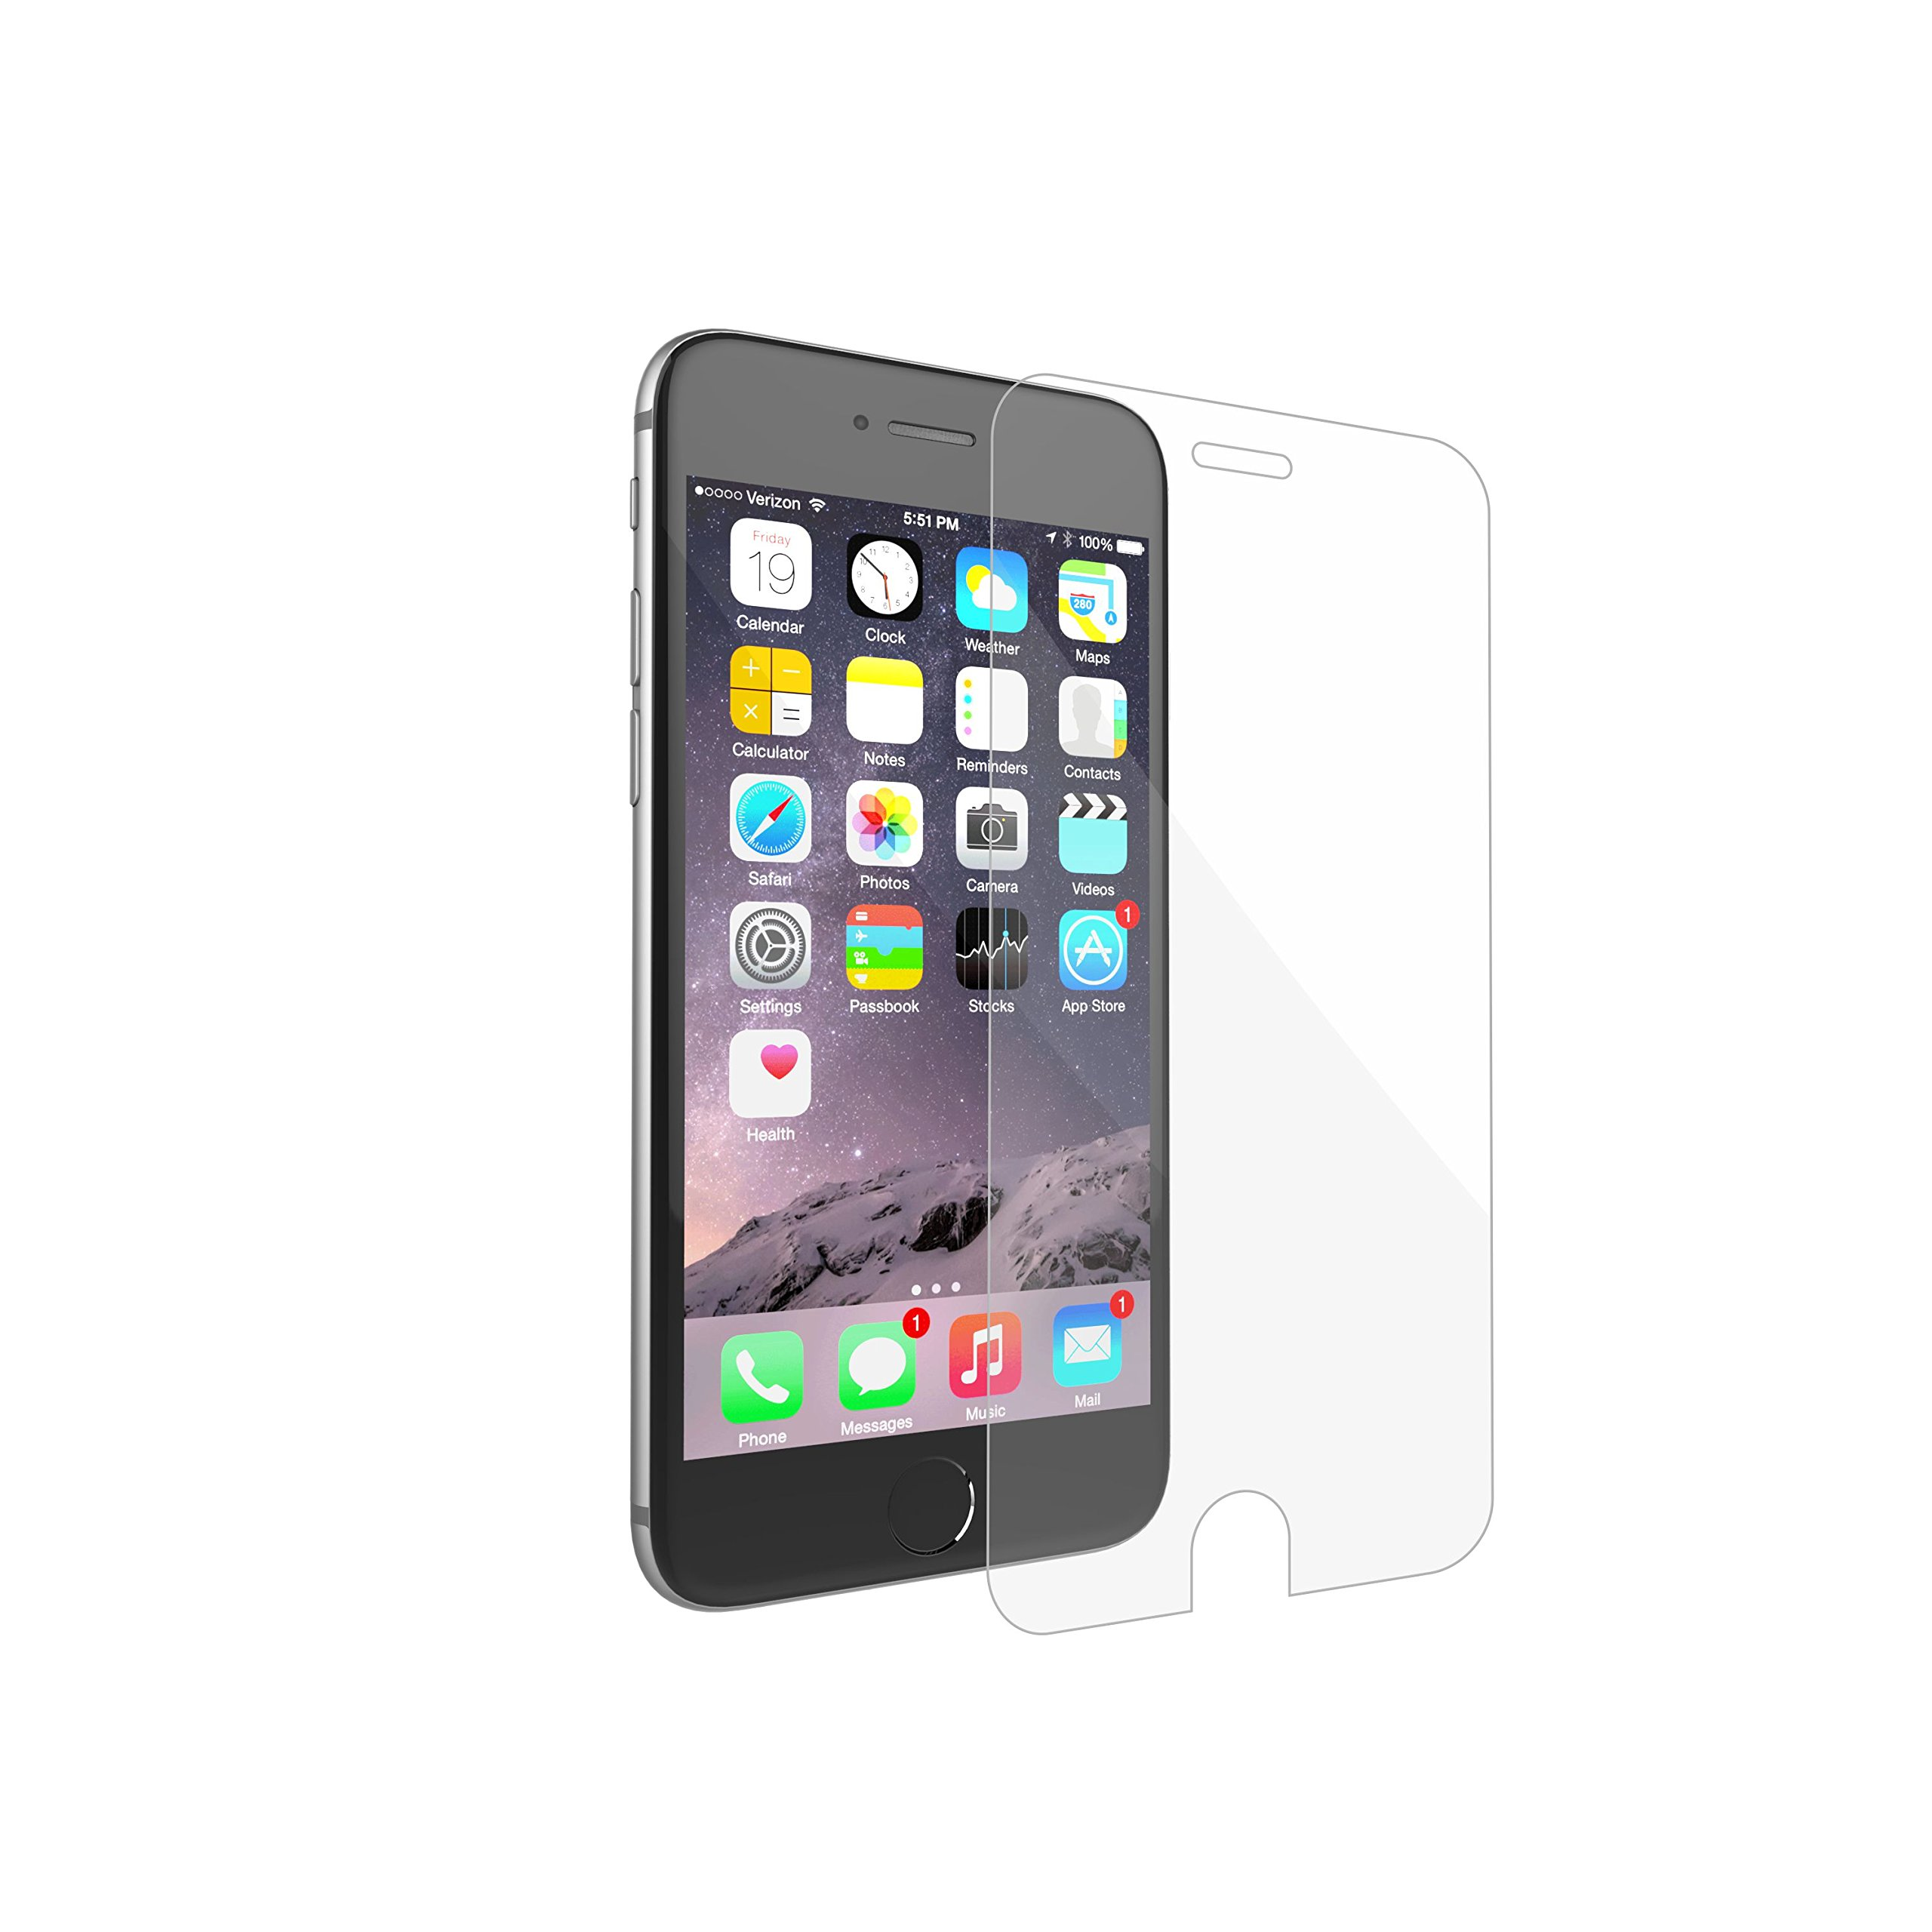 TAMO Shatterproof Glass Screen Protector with Nano-Slim Technology, iPhone 6 Plus/6s Plus by MOTA (Image #2)